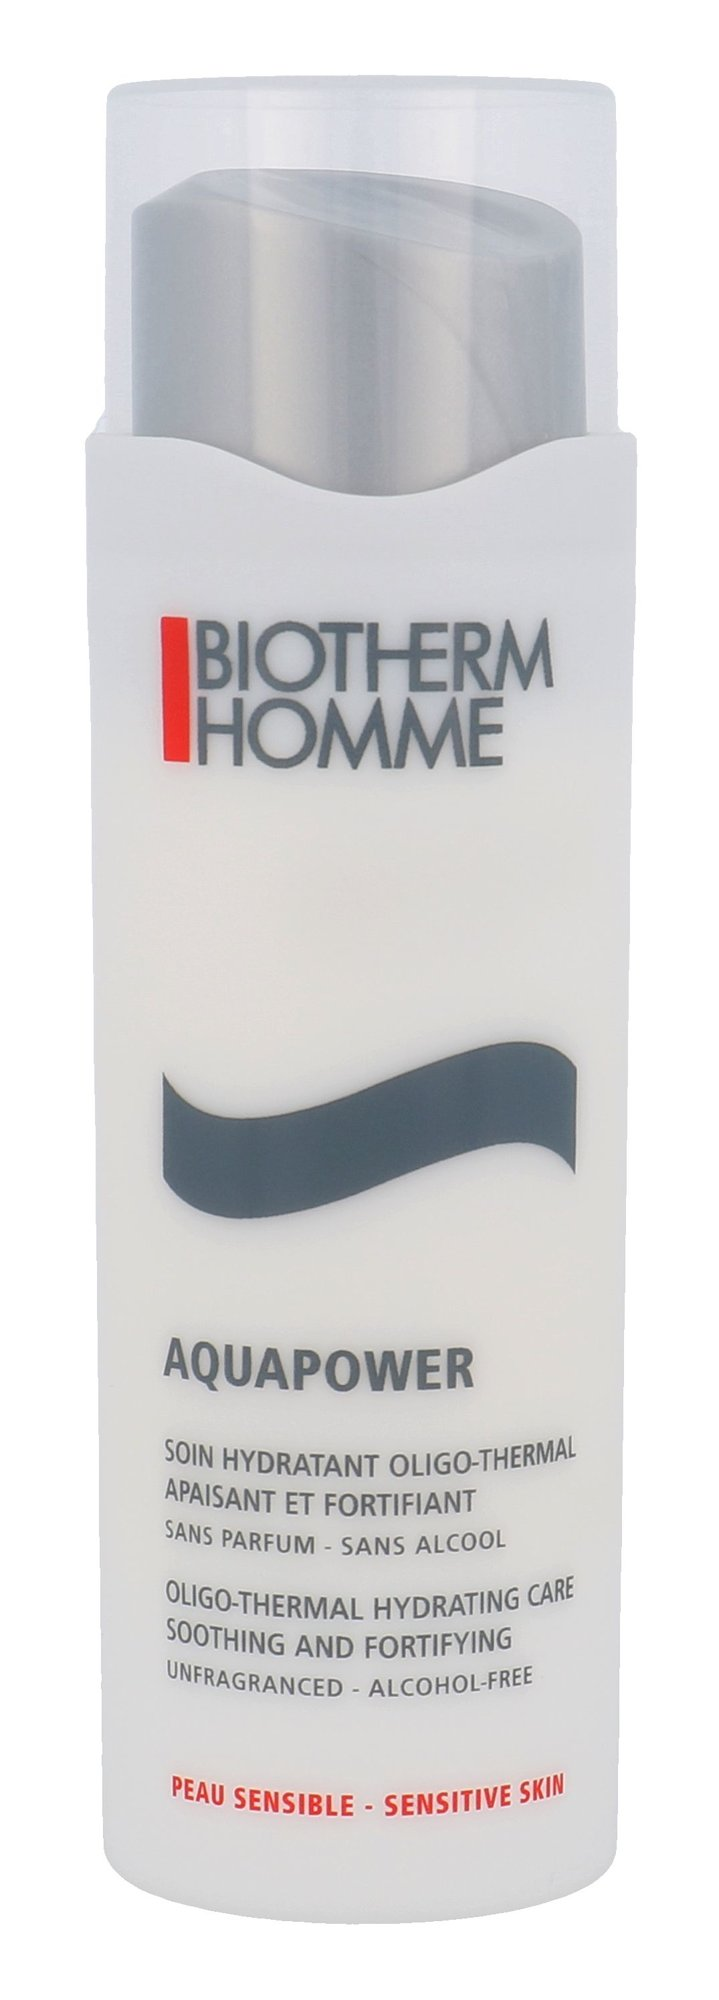 Biotherm Homme Aquapower Cosmetic 75ml  Oligo Thermal Care